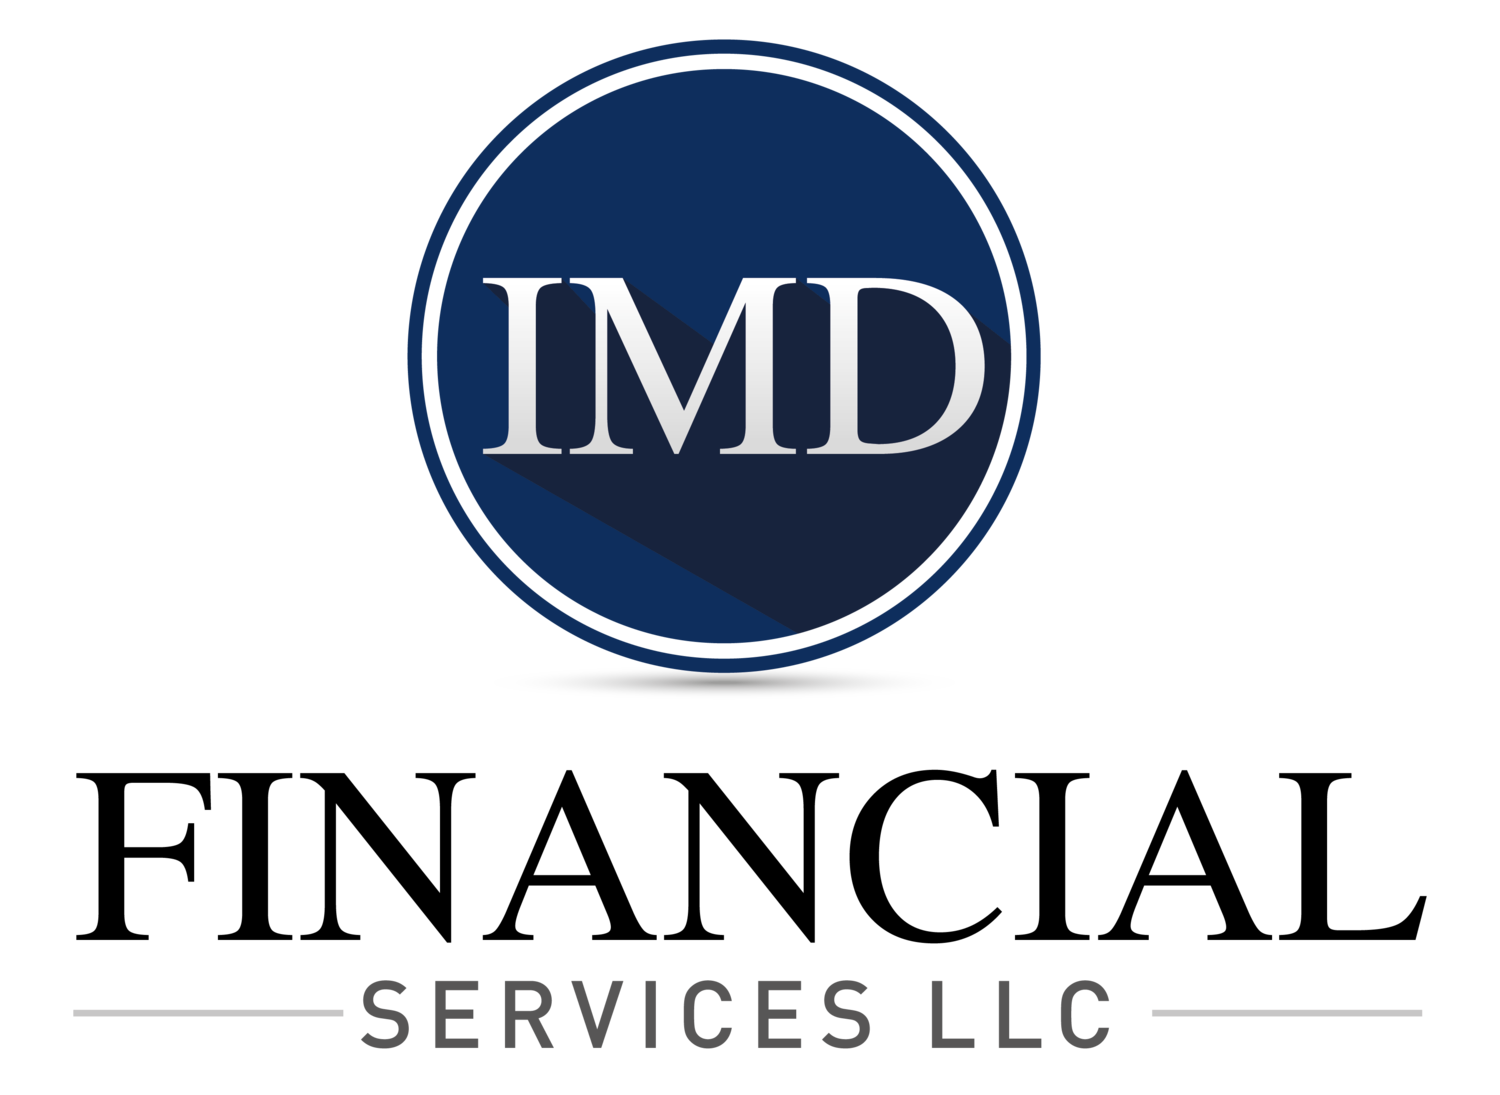 imd financial services